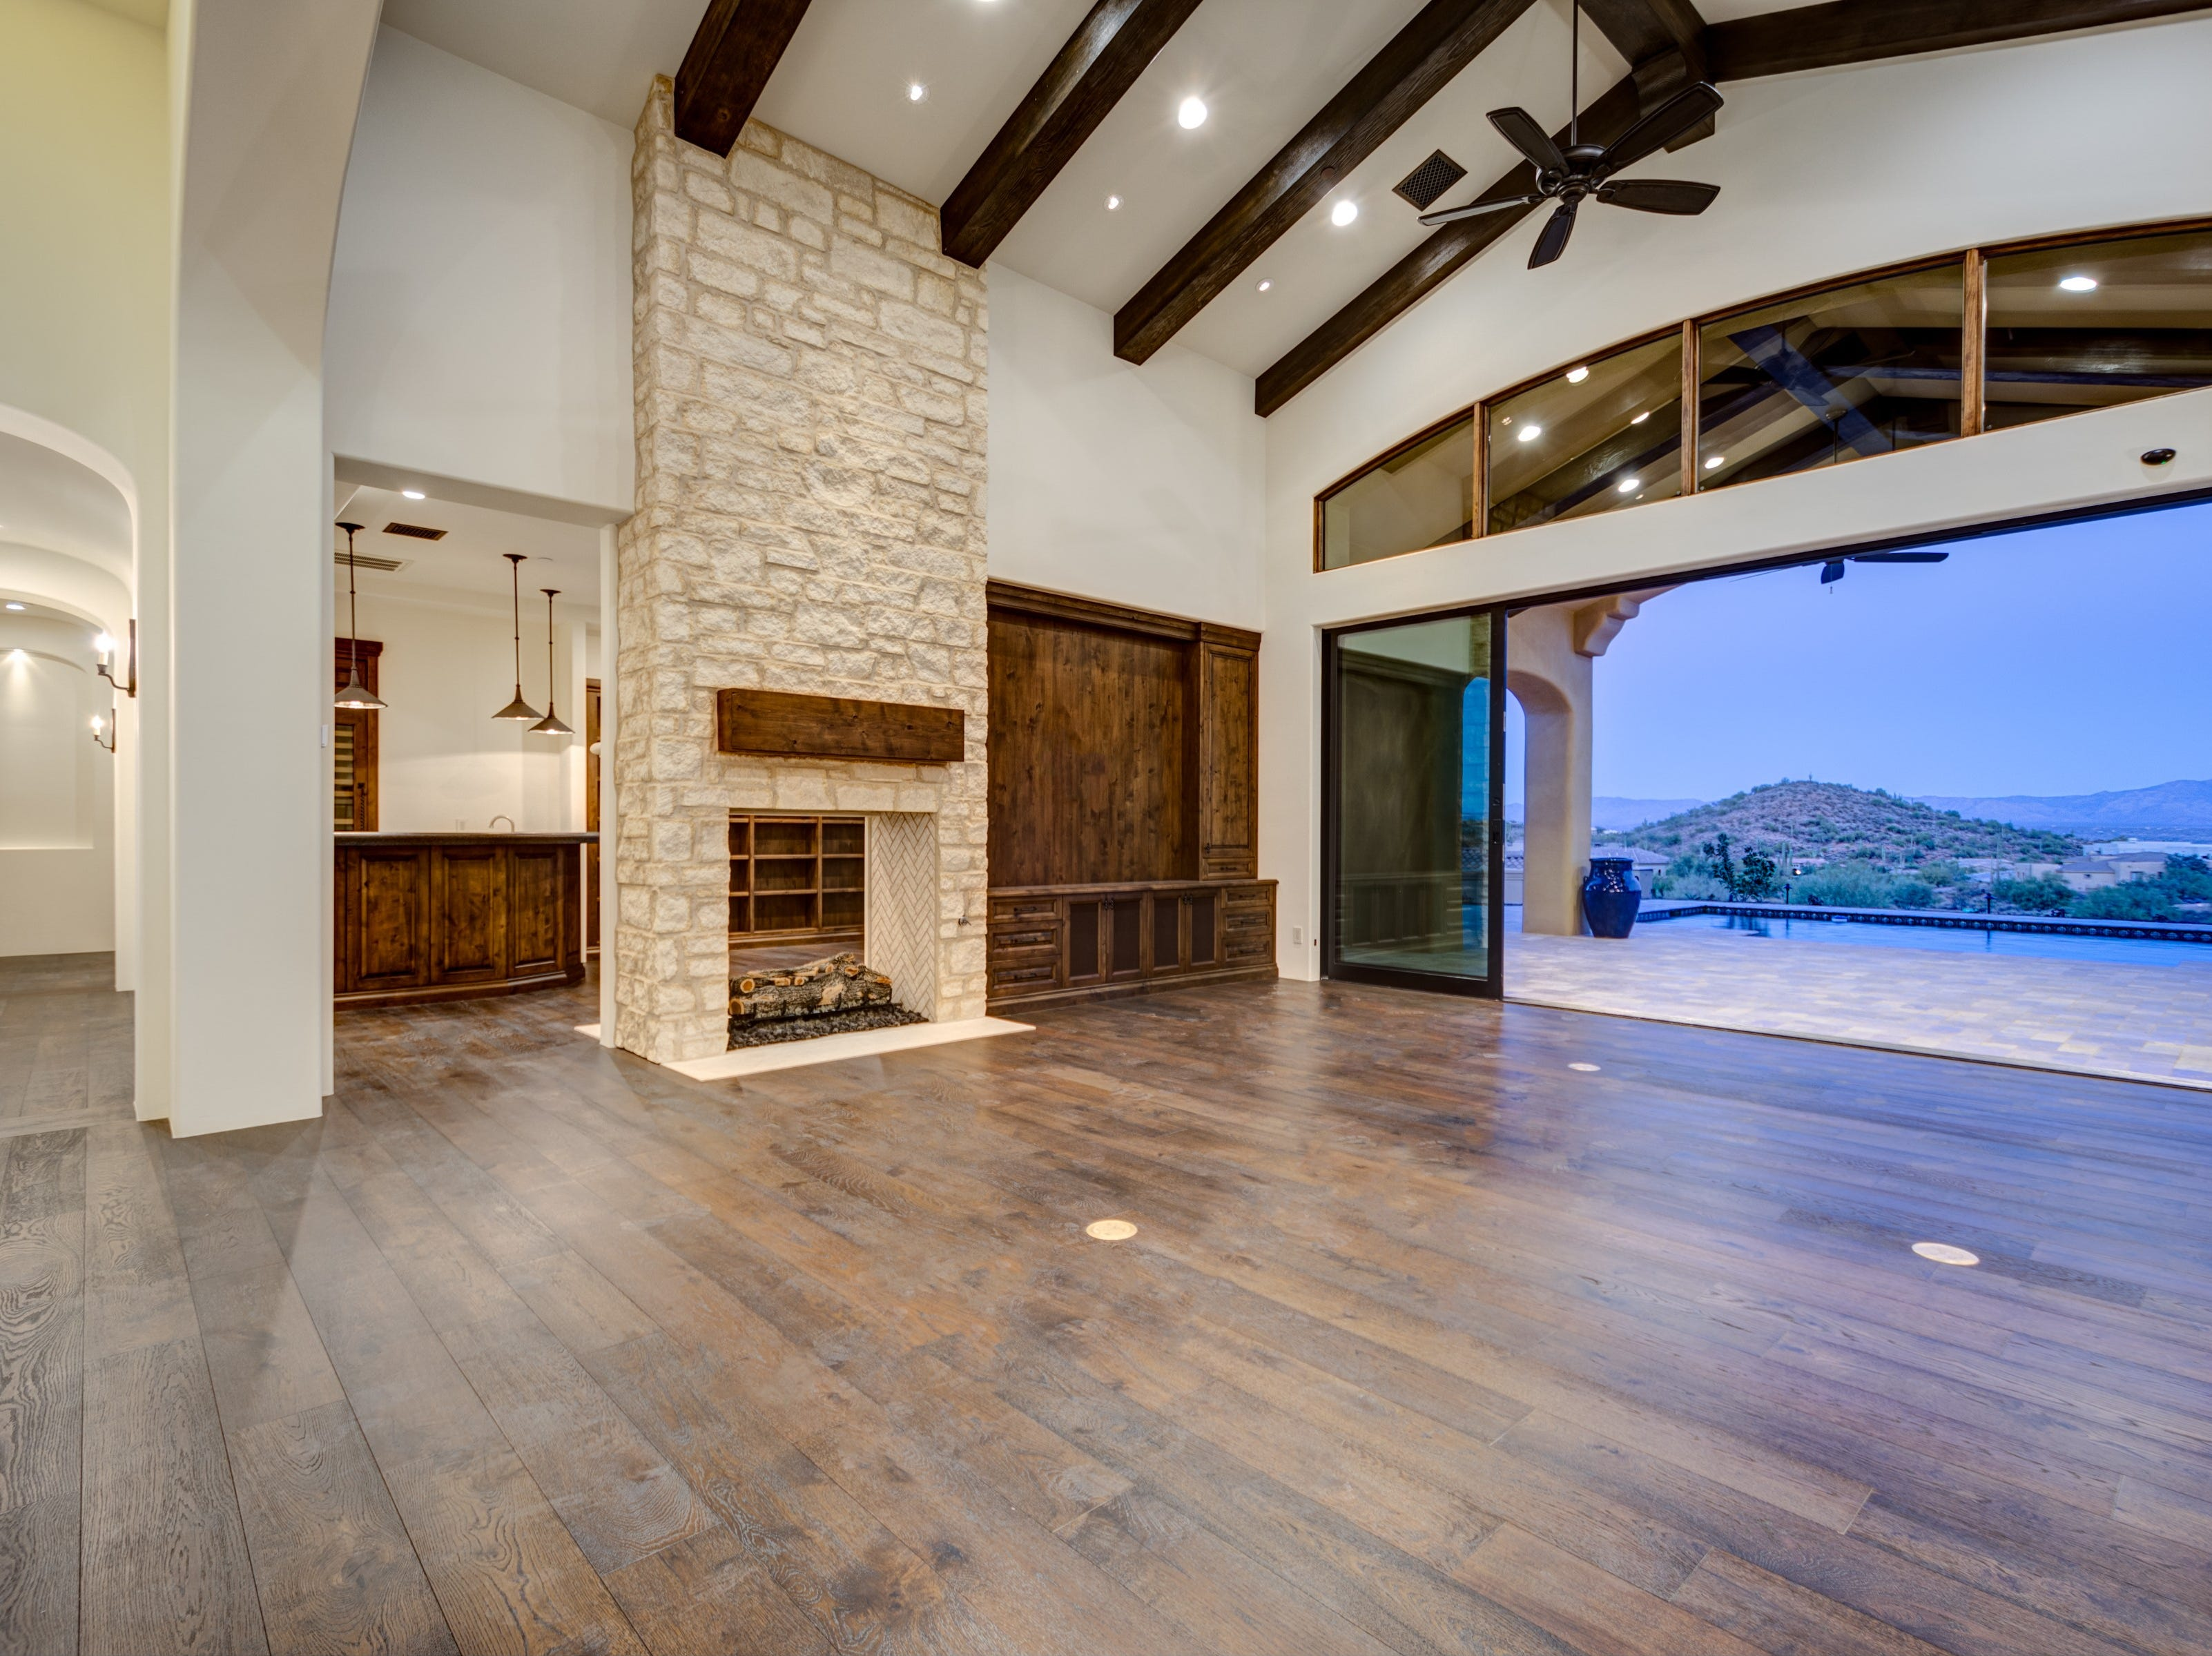 This Fountain Hills home features vaulted beamed ceilings and glass wall doors that open to a backyard that has mountain views.